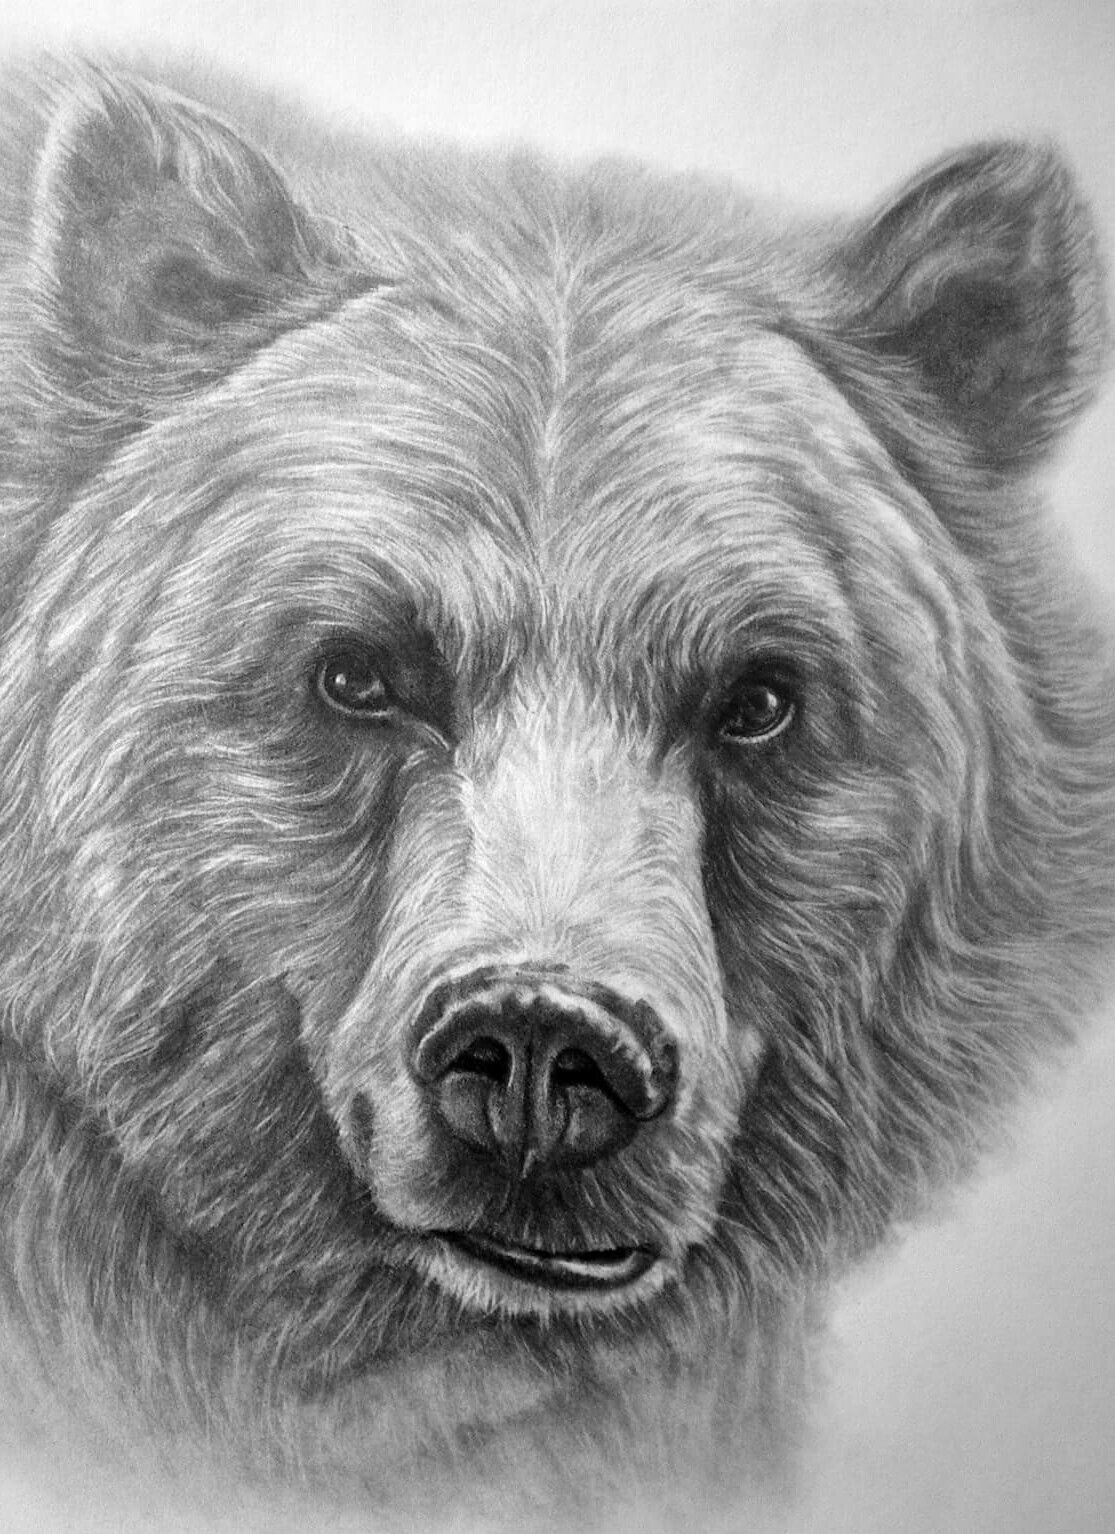 grizzly bear drawings easy drawing ideas step by step drawings bear grizzly